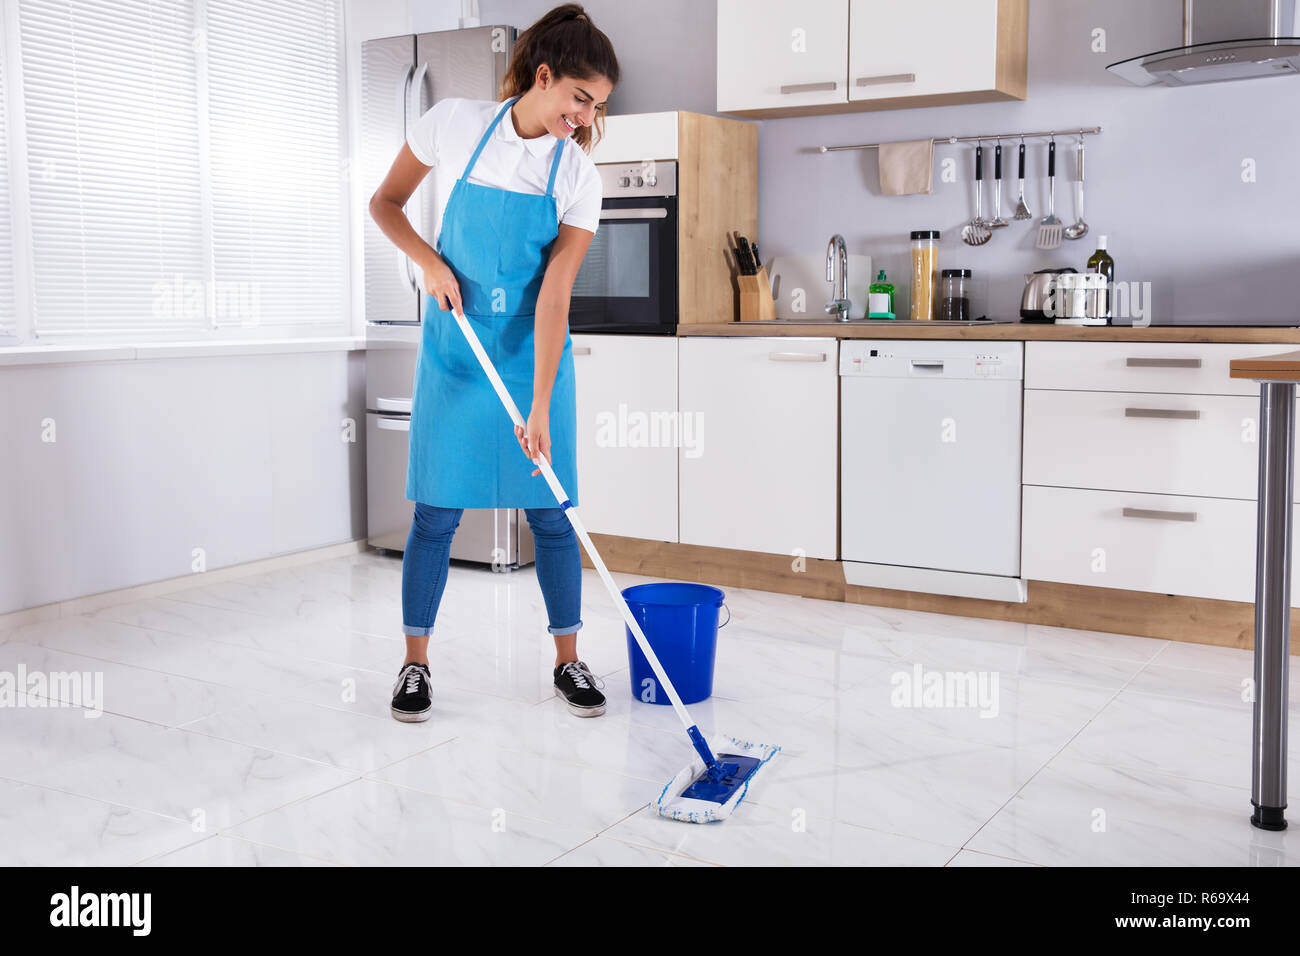 Housewife Cleaning Lady Mop High Resolution Stock Photography And Images Alamy